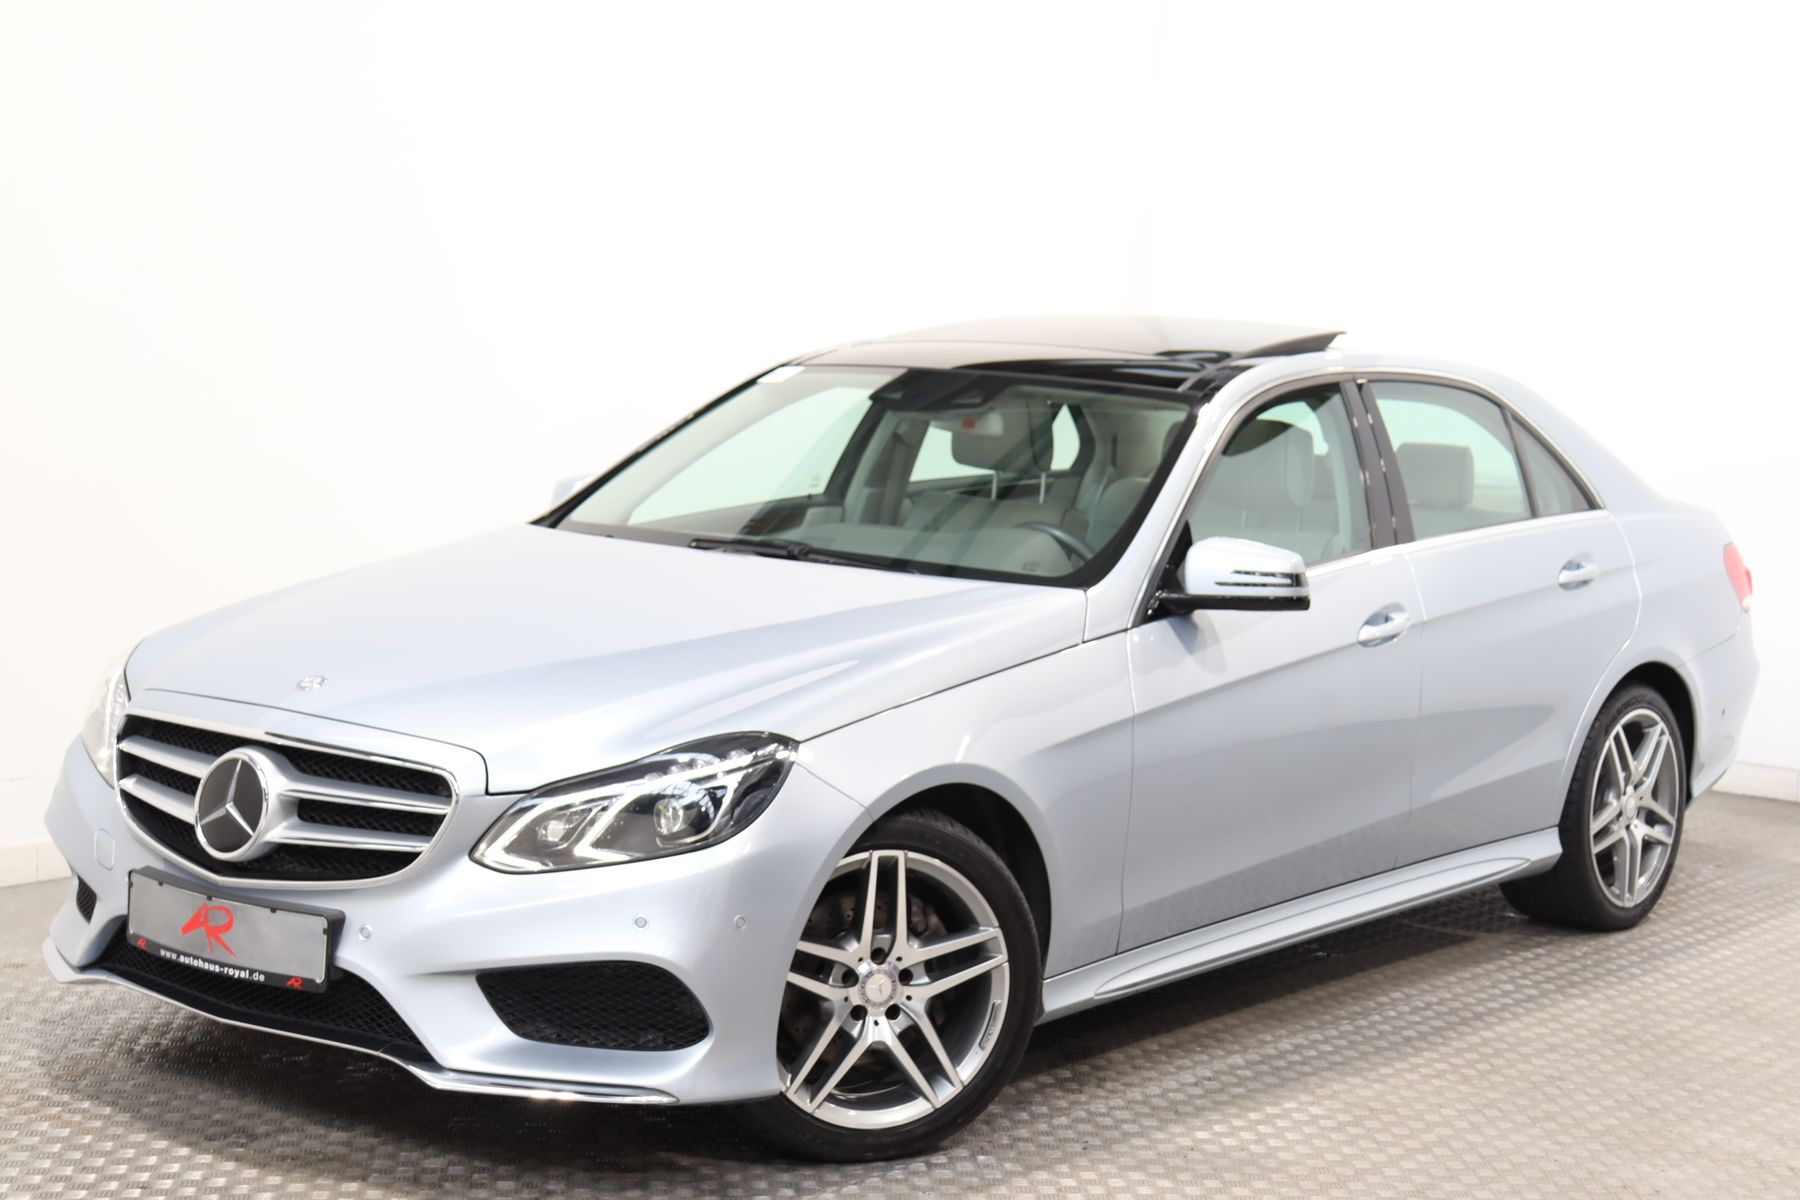 Mercedes-Benz E 300 BT AMG ILS,PANO,HARMAN/K,DISTRO,MASSAGE, Jahr 2013, Diesel